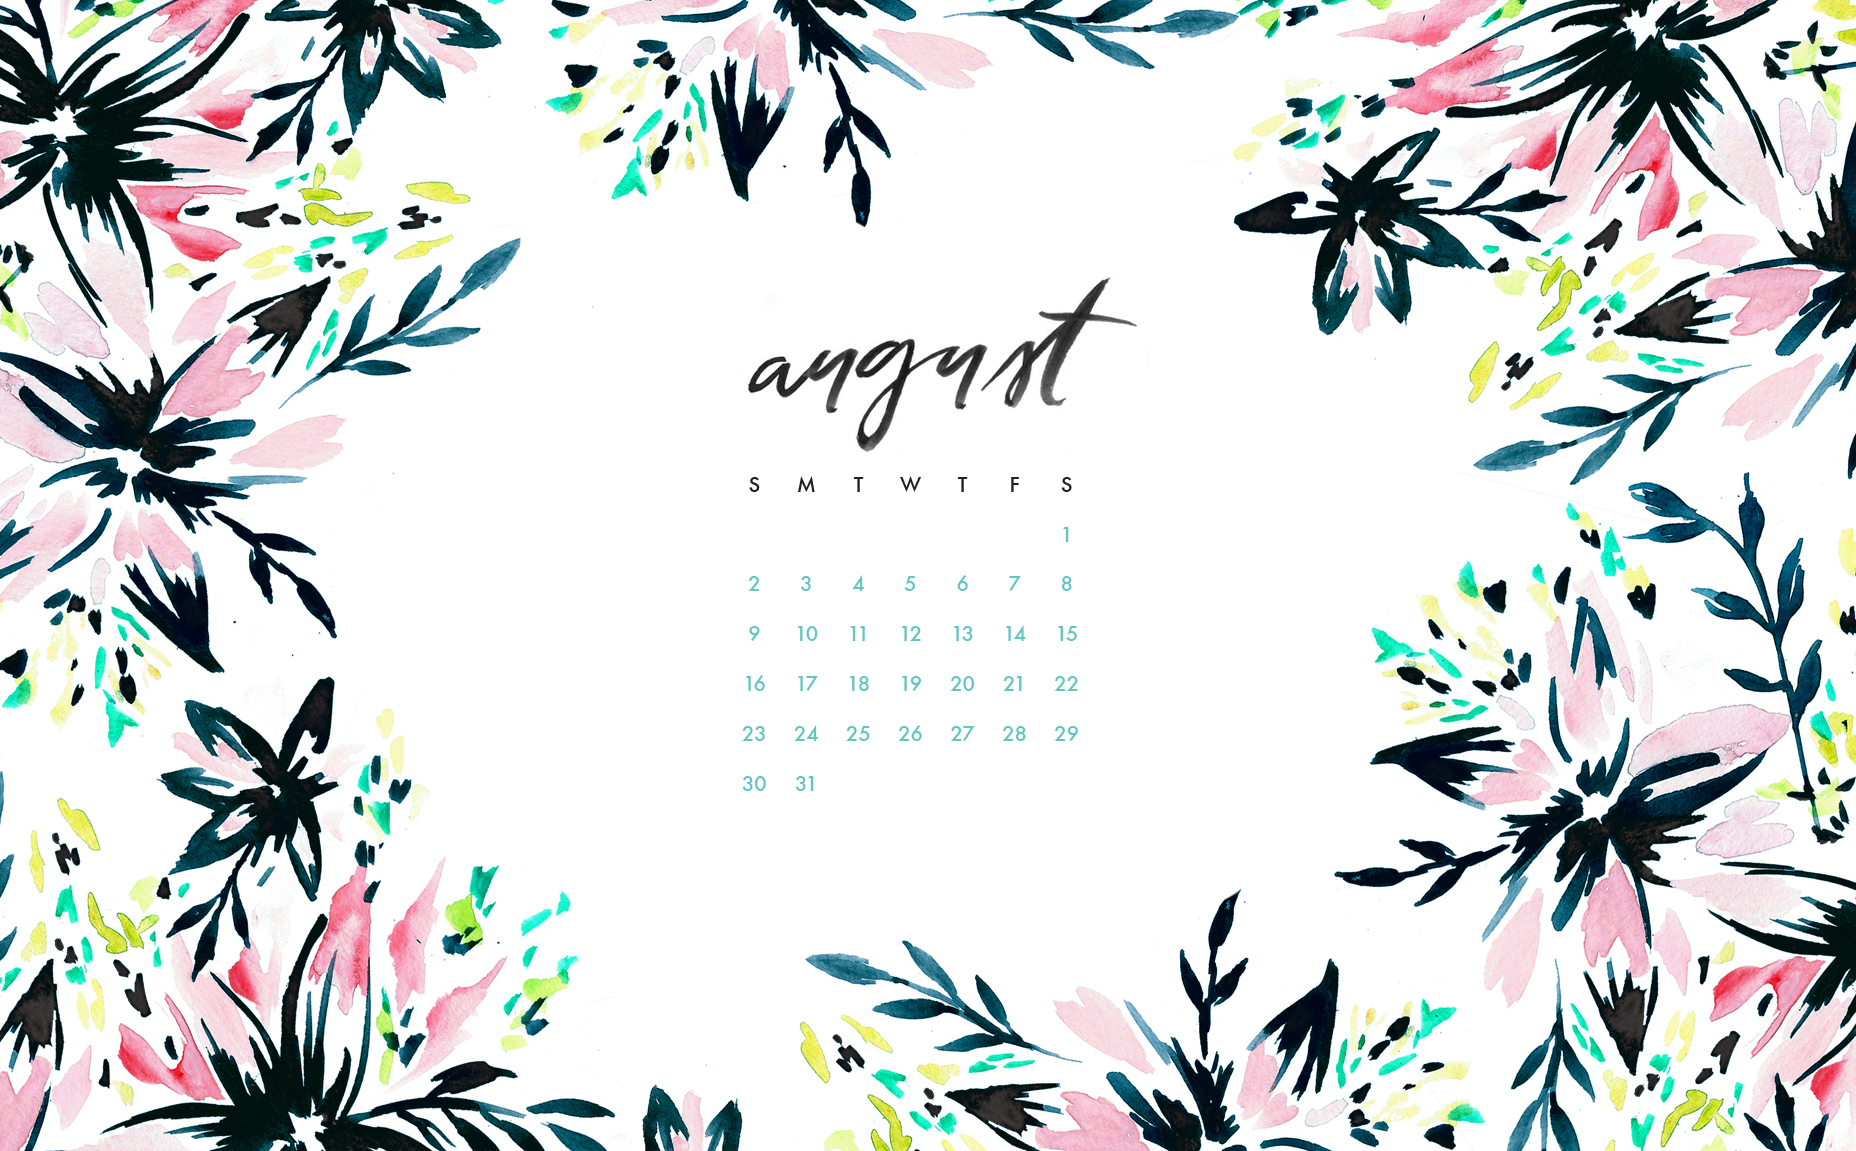 August 2015 Wallpaper Downloads May Designs